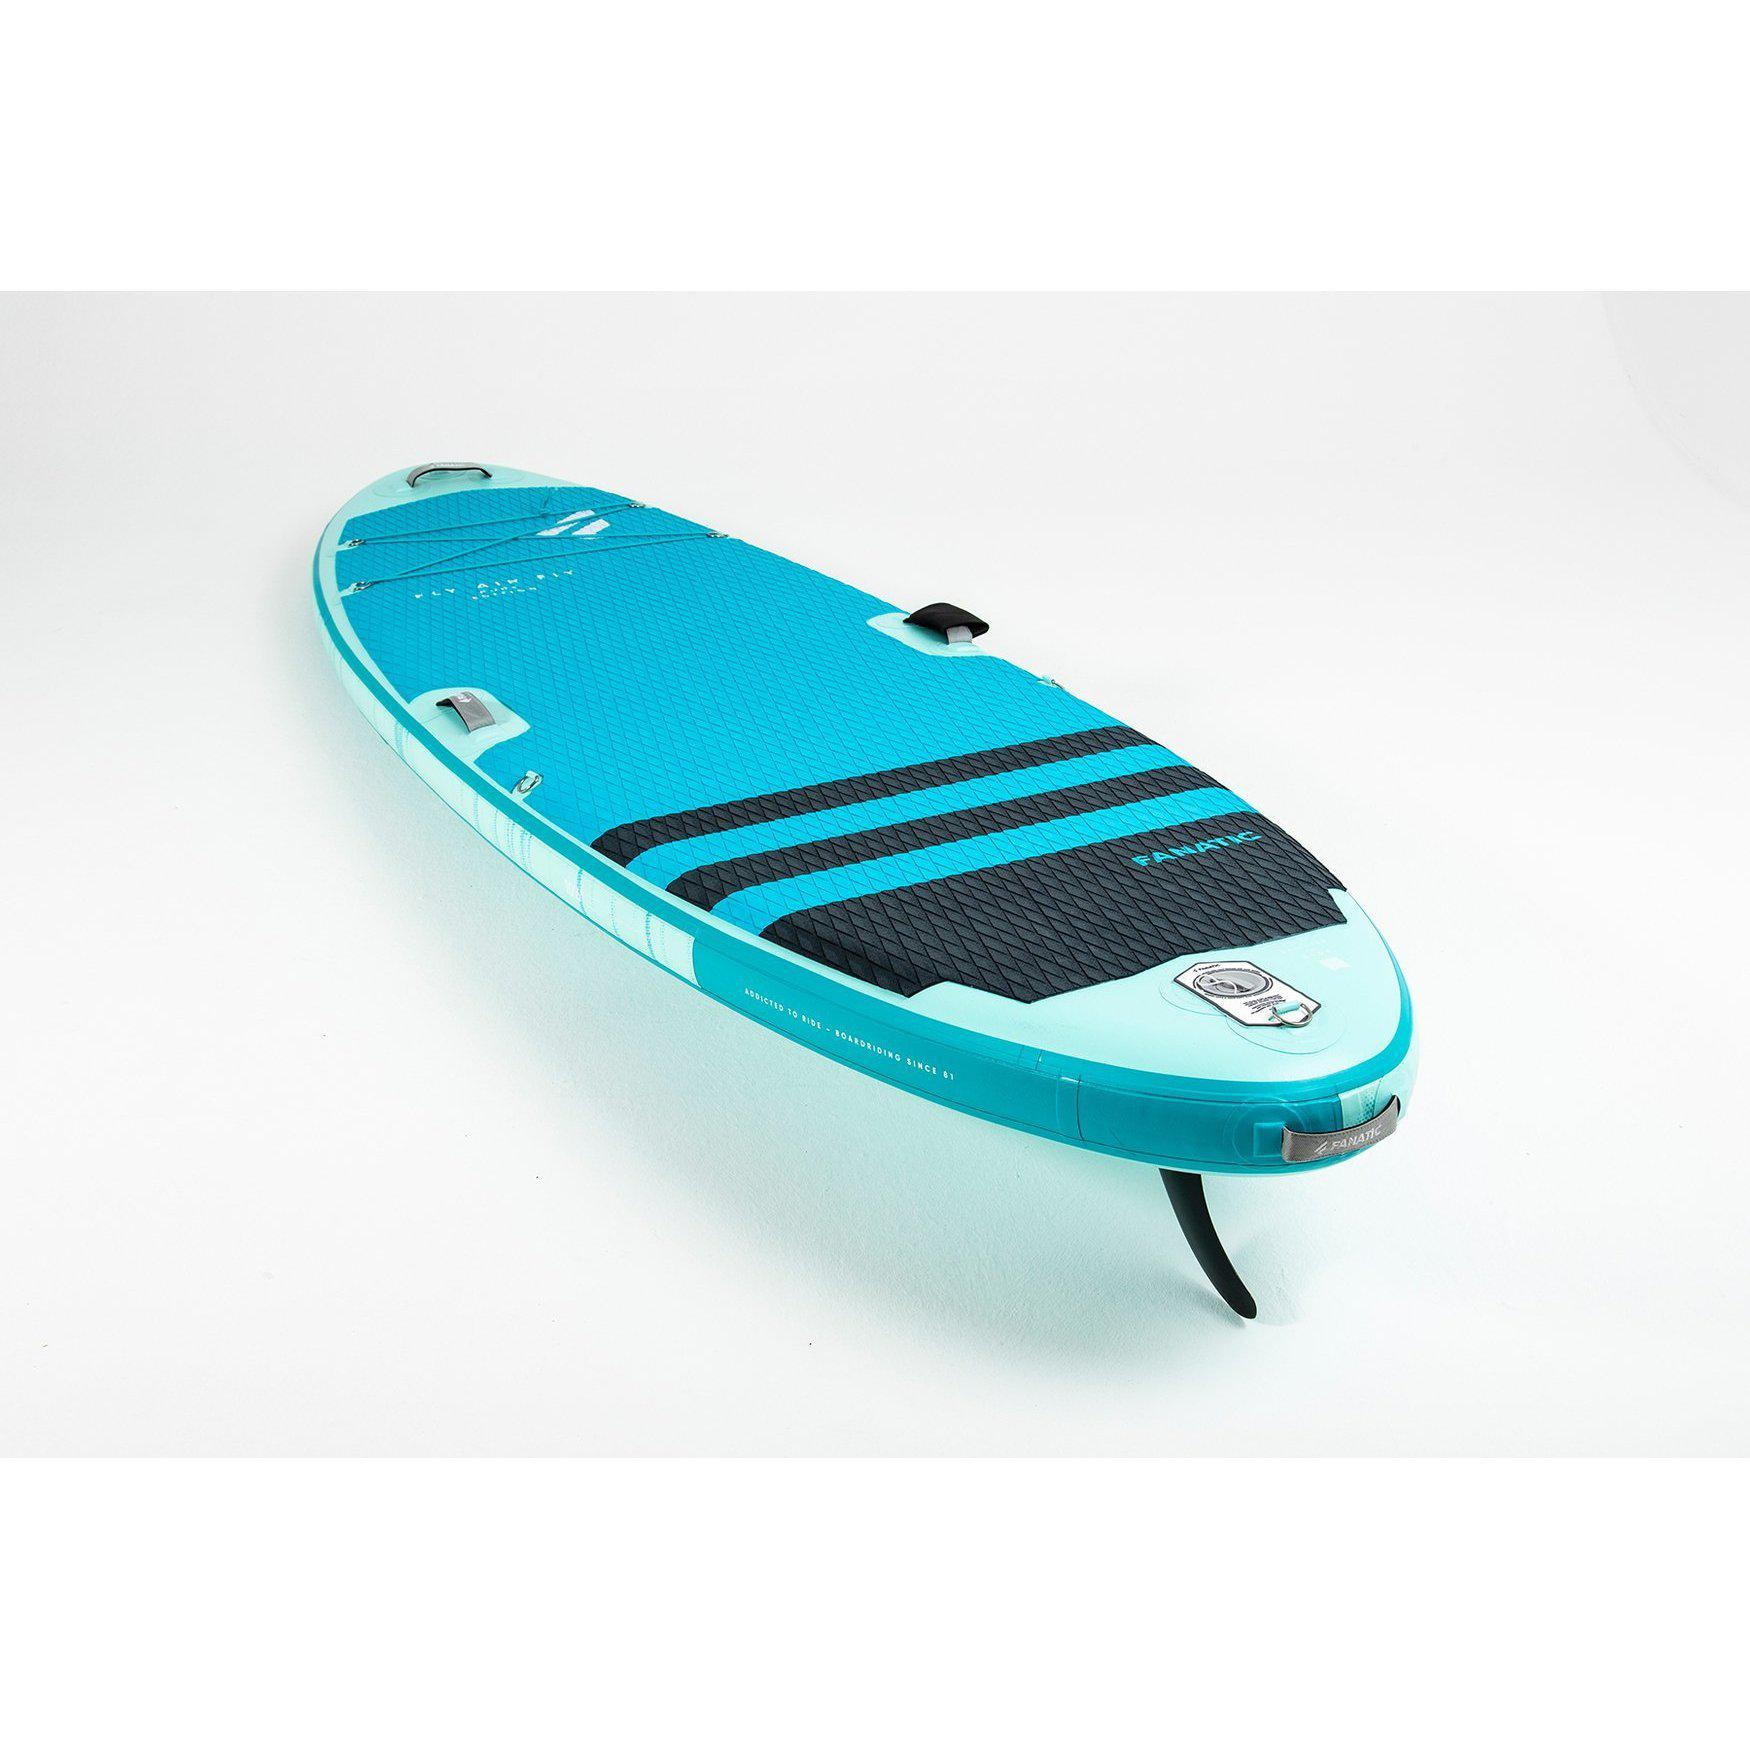 2020 Fanatic Fly Air Fit Inflatable Paddle Board-Big Winds